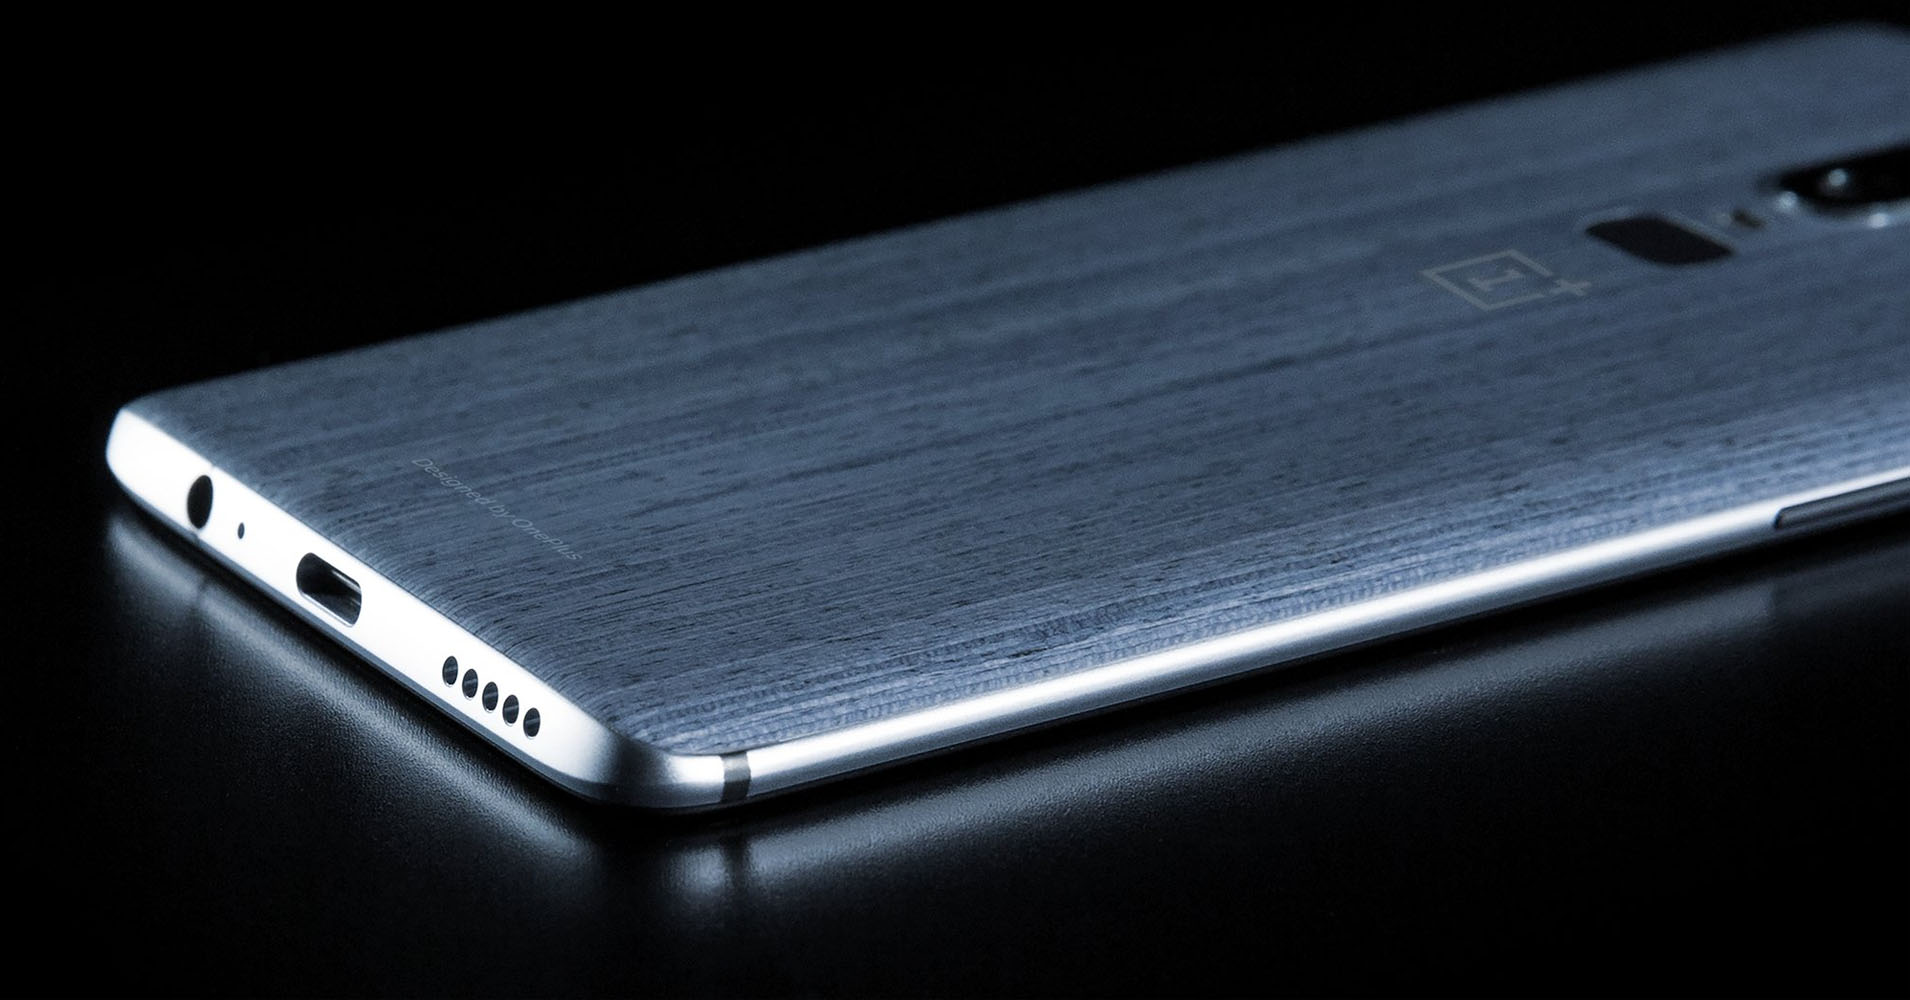 6648935f2de It s official  The OnePlus 6 will come with (up to) 8 GB of RAM and 256 GB  of storage